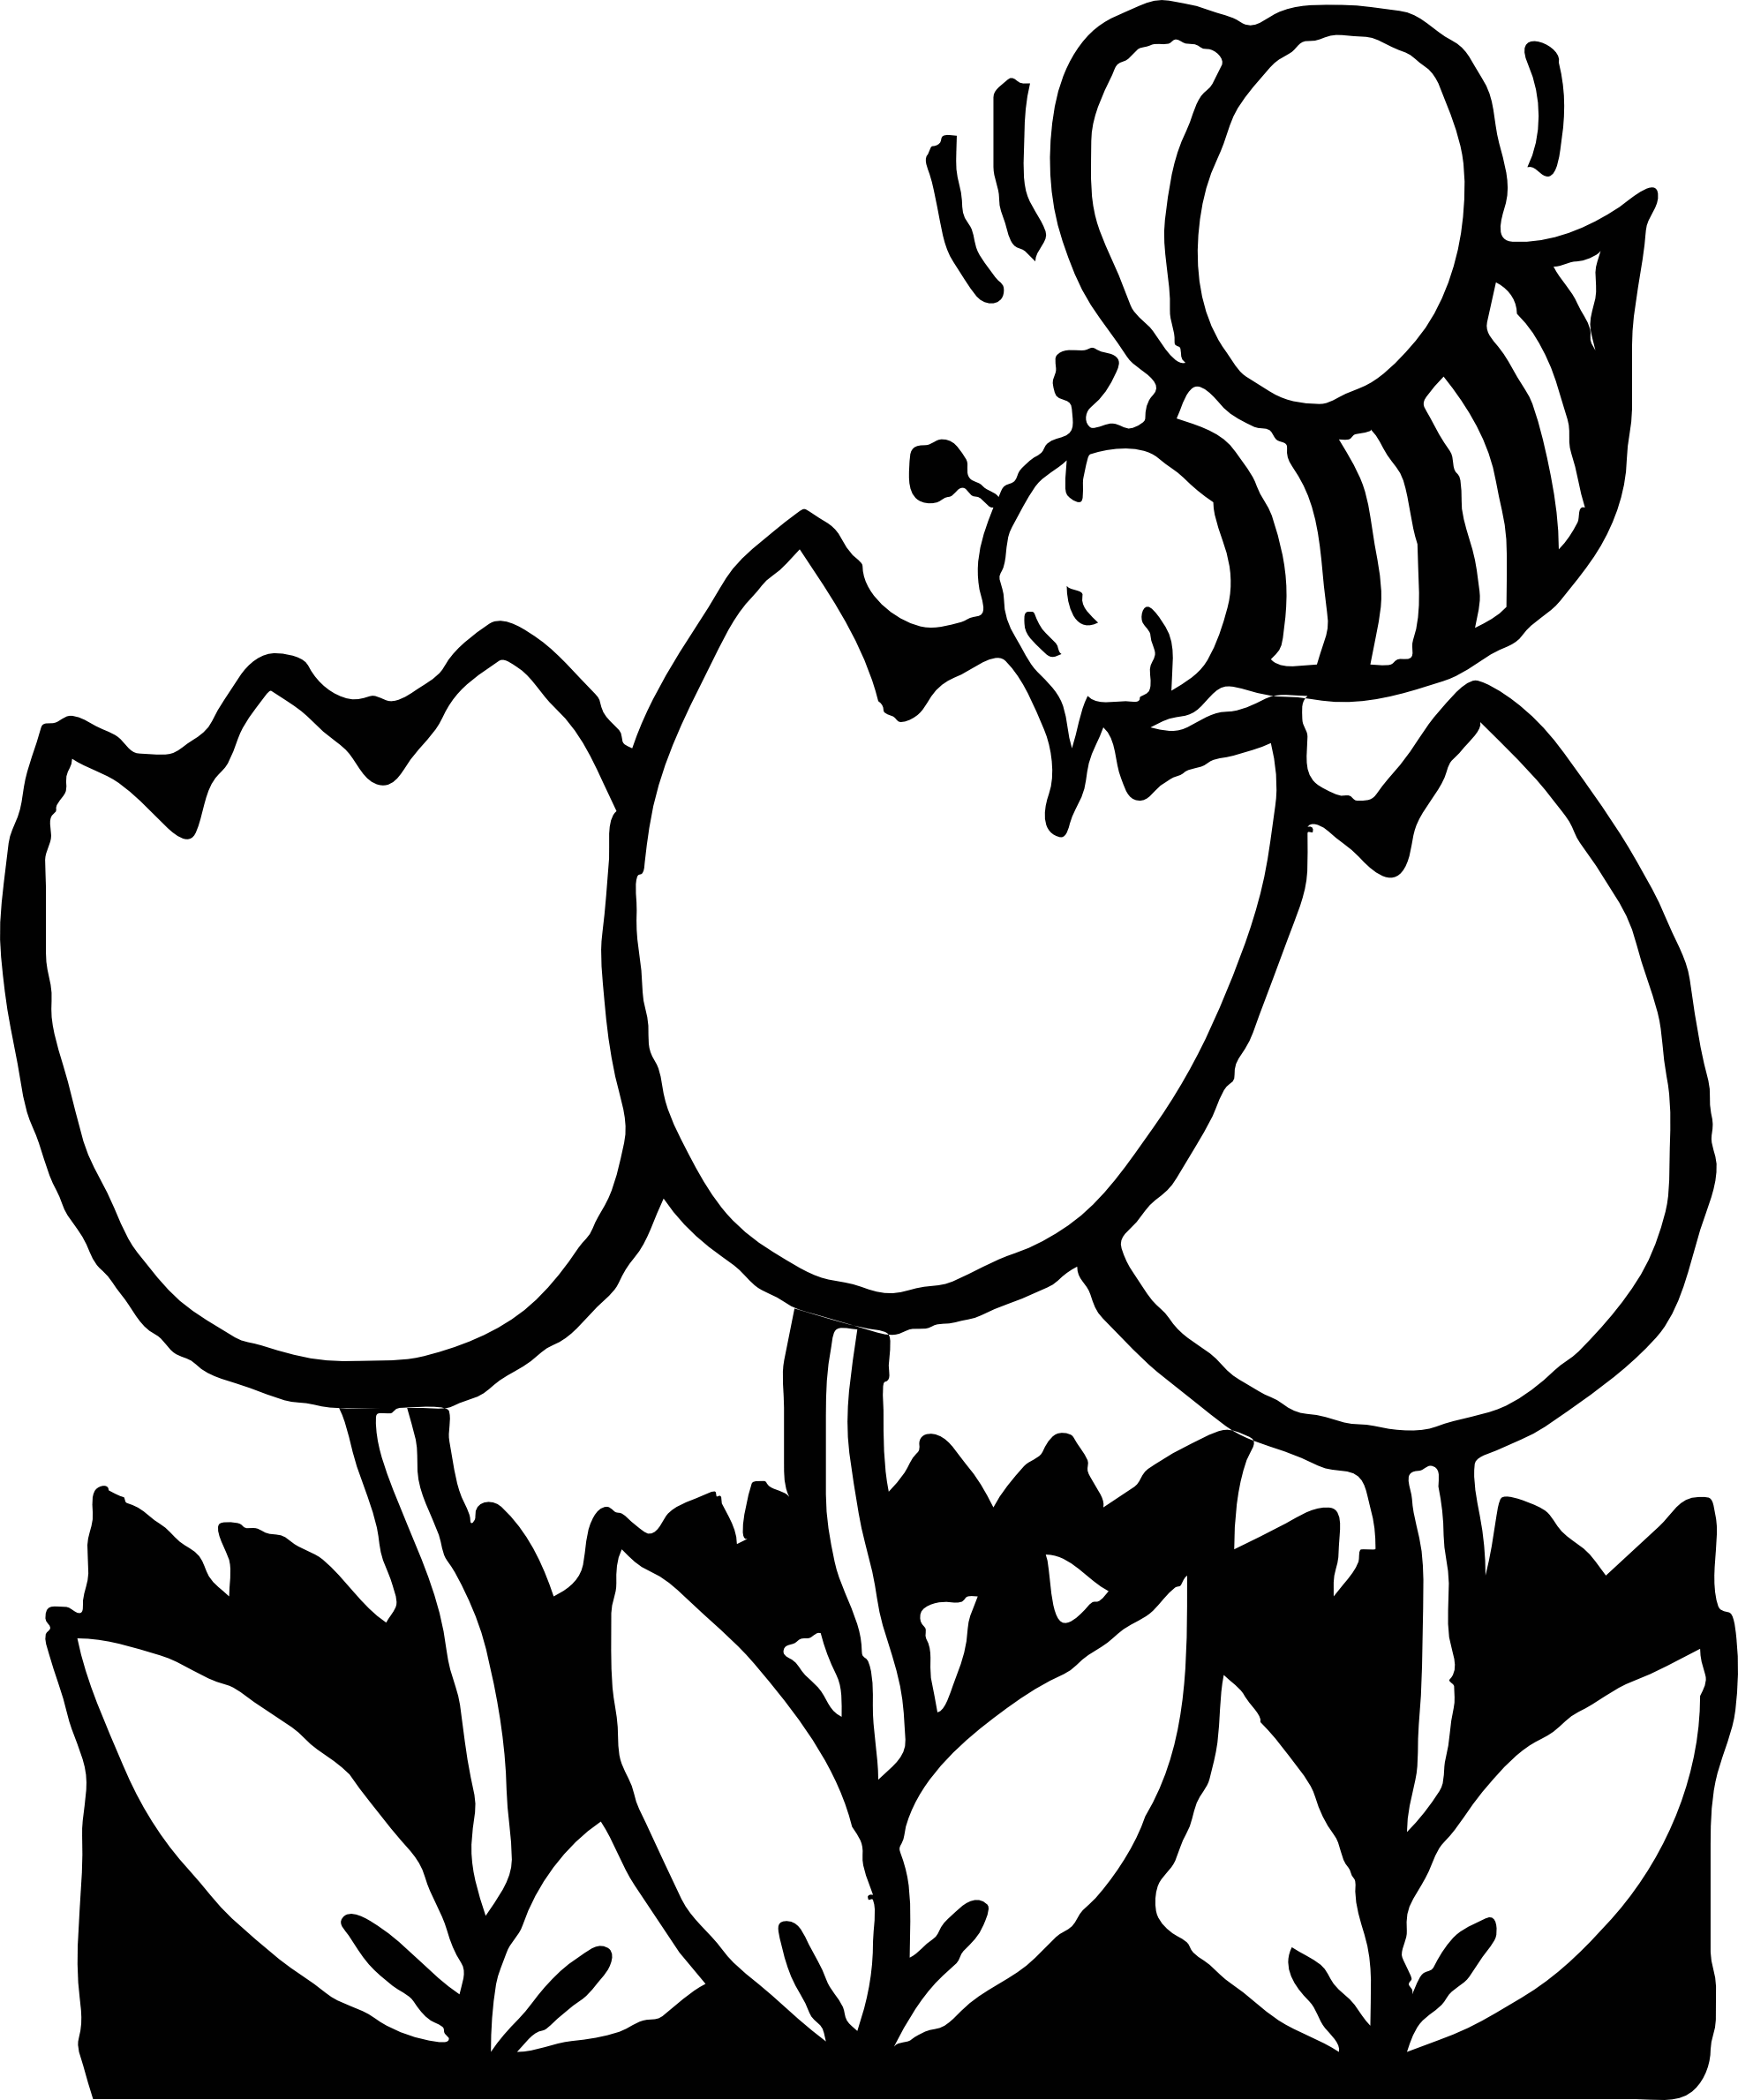 Clipart bee black and white. Line drawing at getdrawings